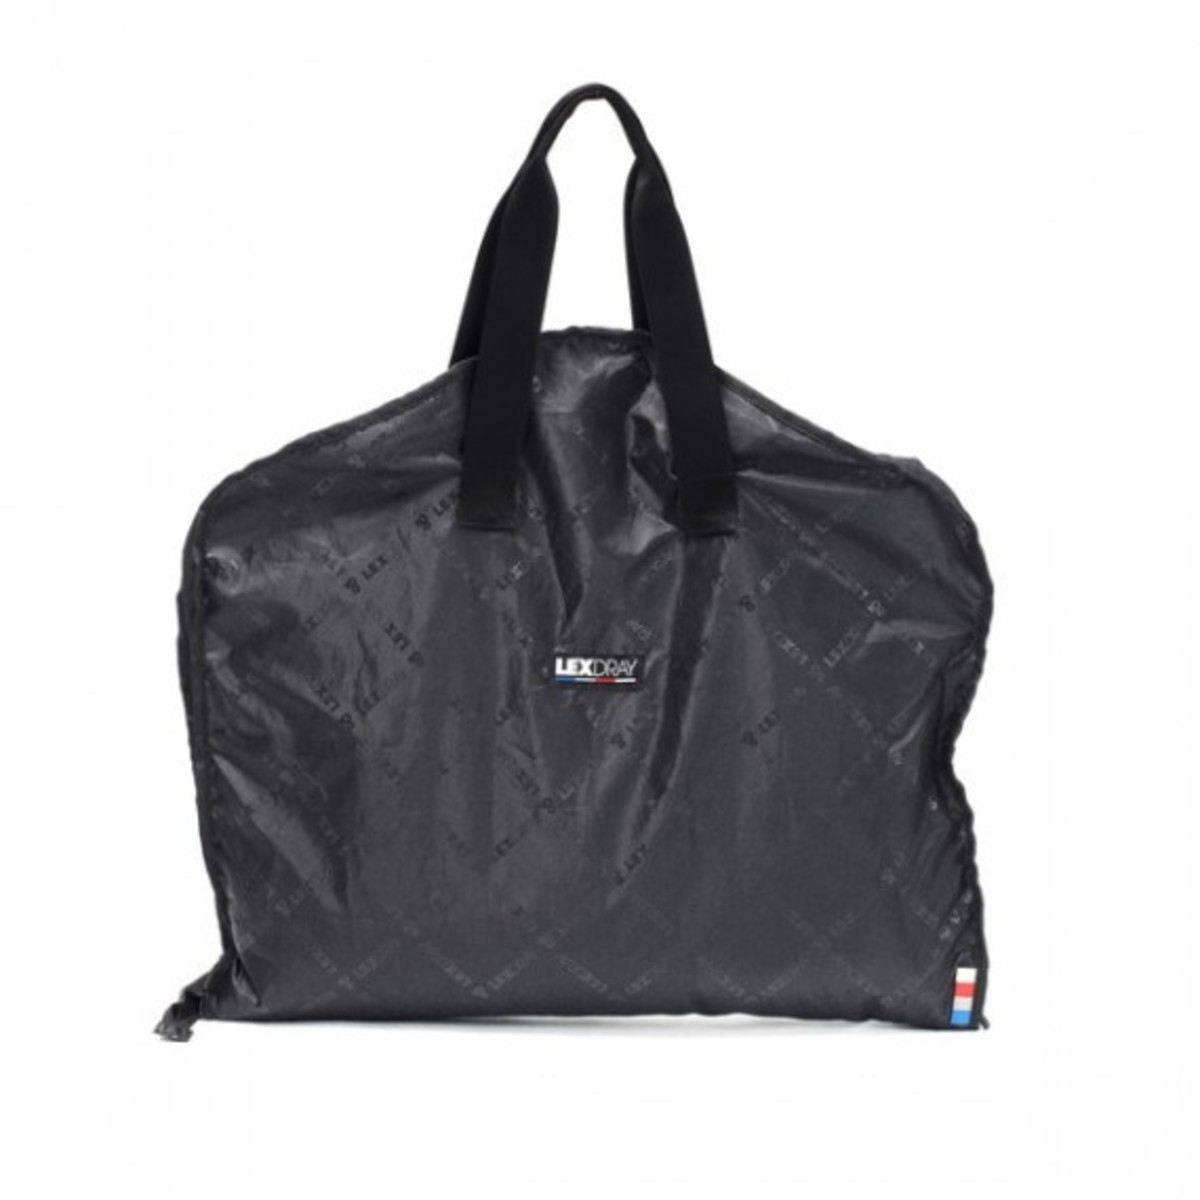 lexdray-london-garment-bag-7